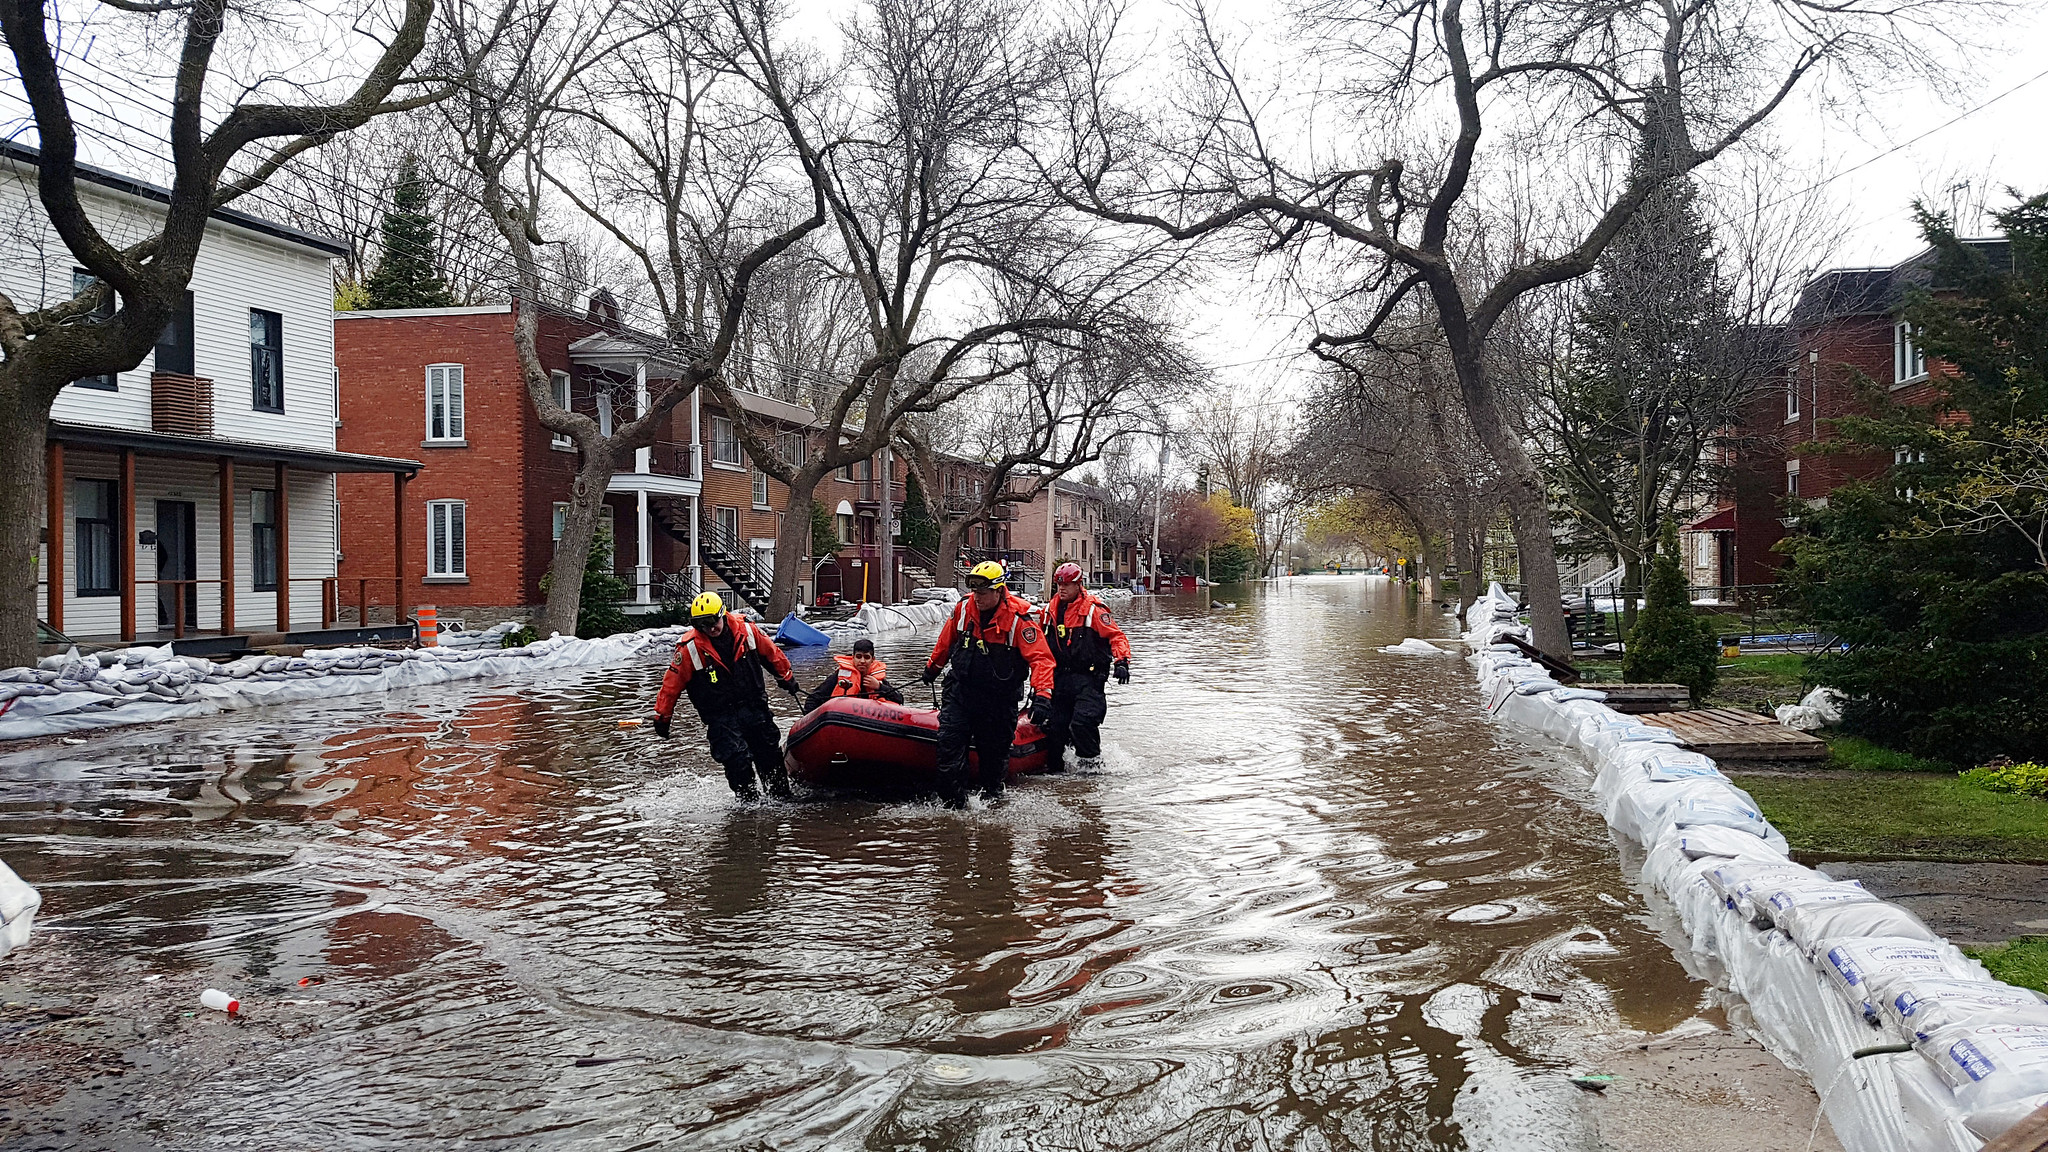 Prime Minister's Office announces $50 million investment to create largest Montreal park and address flood concerns